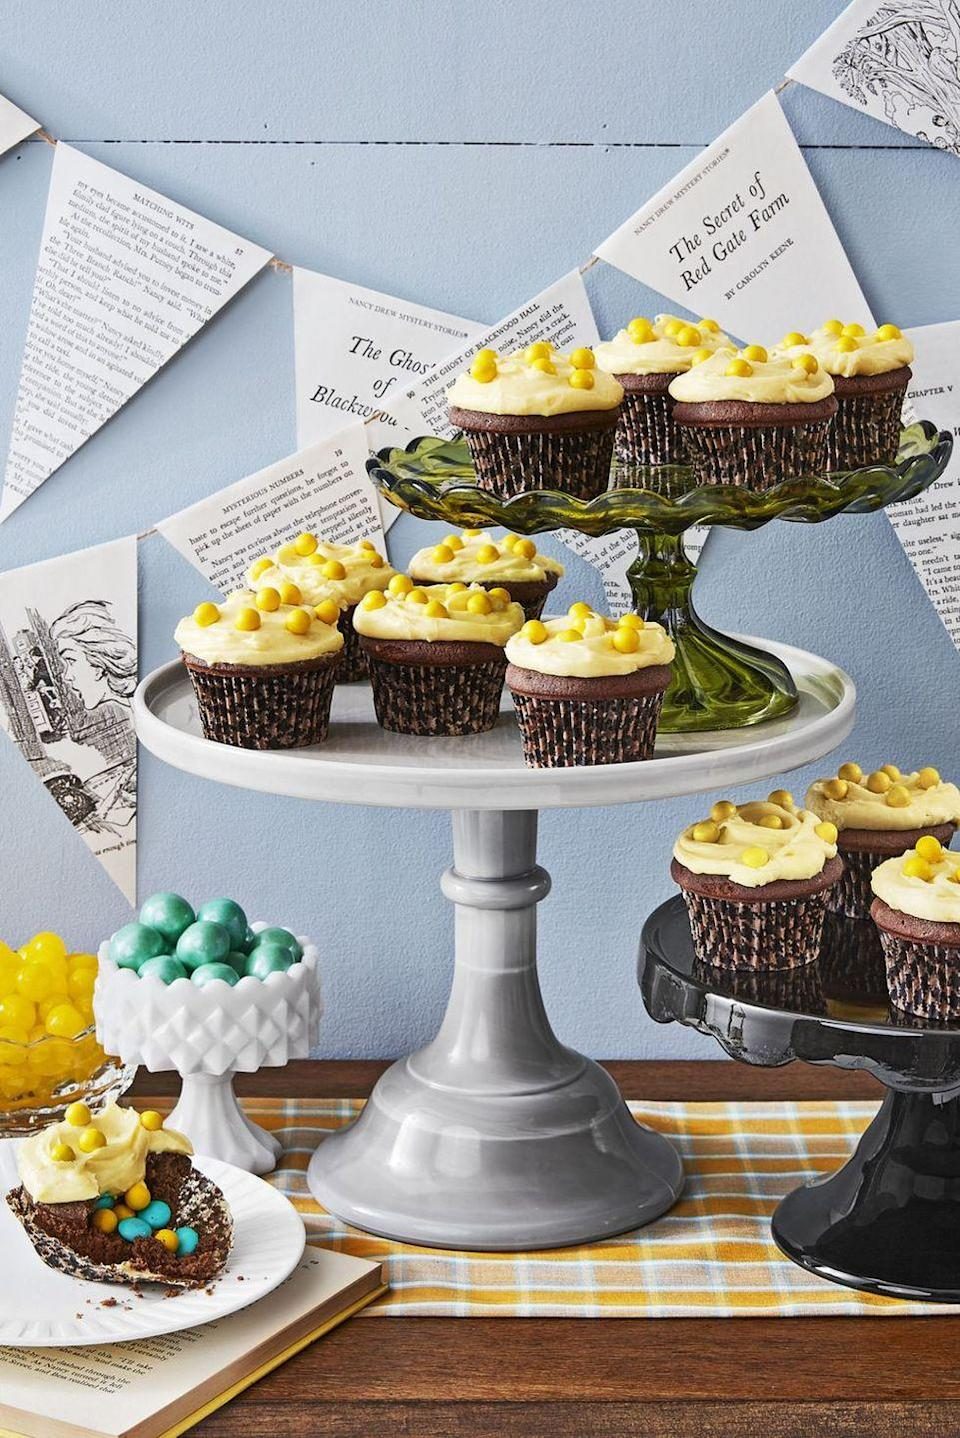 """<p>What do these deeply chocolately cupcakes have to hide? Colorful chocolate candies buried inside!</p><p><em><a href=""""https://www.countryliving.com/food-drinks/recipes/a44615/devils-food-cupcakes-recipe/"""" rel=""""nofollow noopener"""" target=""""_blank"""" data-ylk=""""slk:Get the recipe from Country Living »"""" class=""""link rapid-noclick-resp"""">Get the recipe from Country Living »</a></em></p>"""